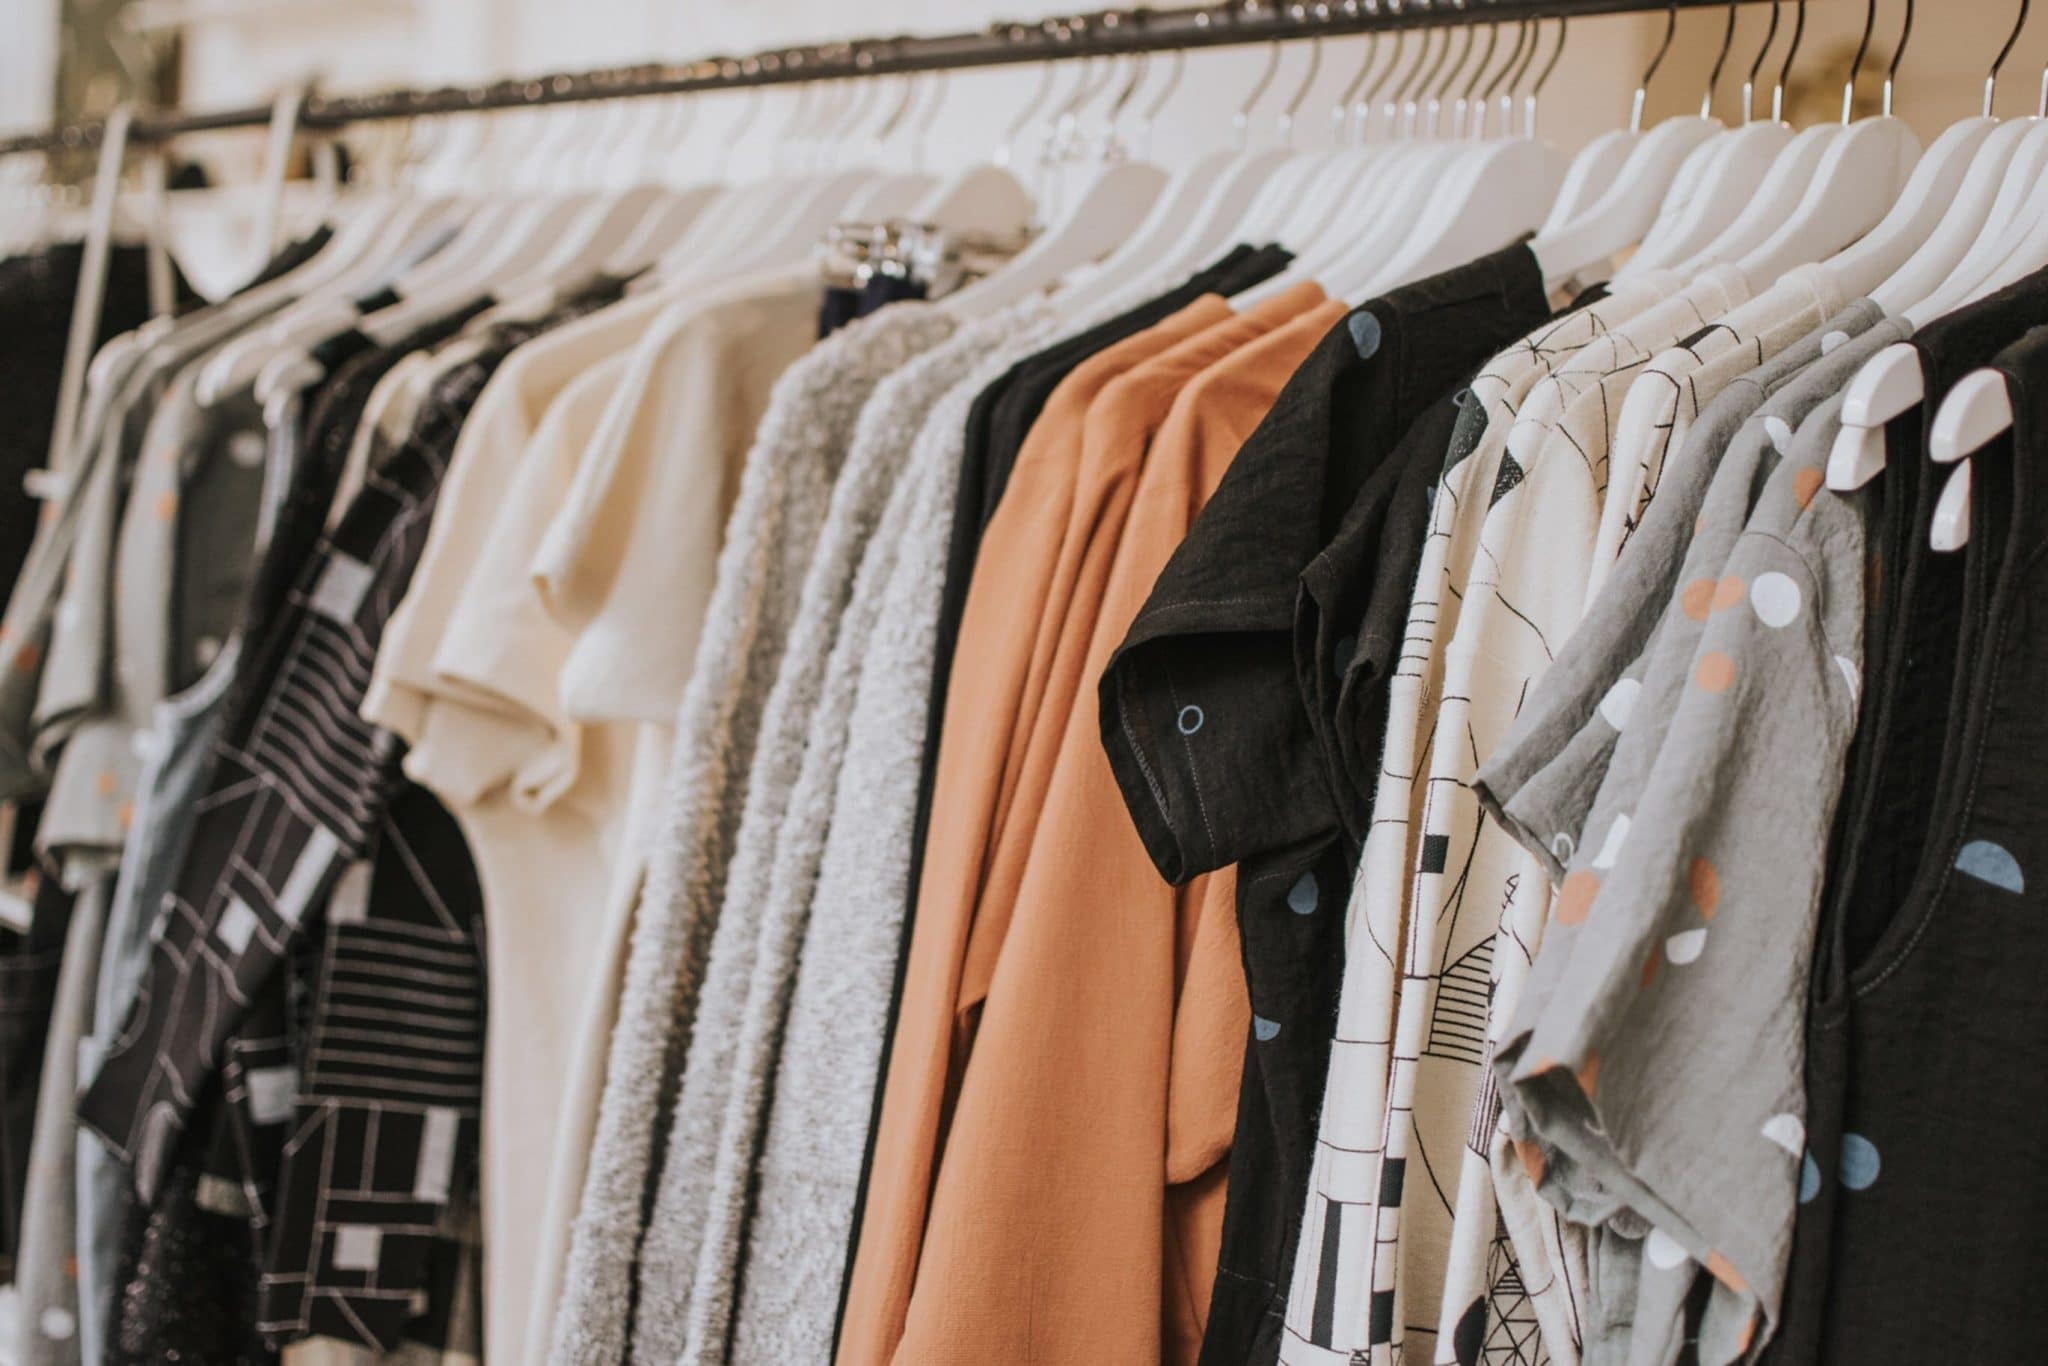 renting clothing future of ethical fashion